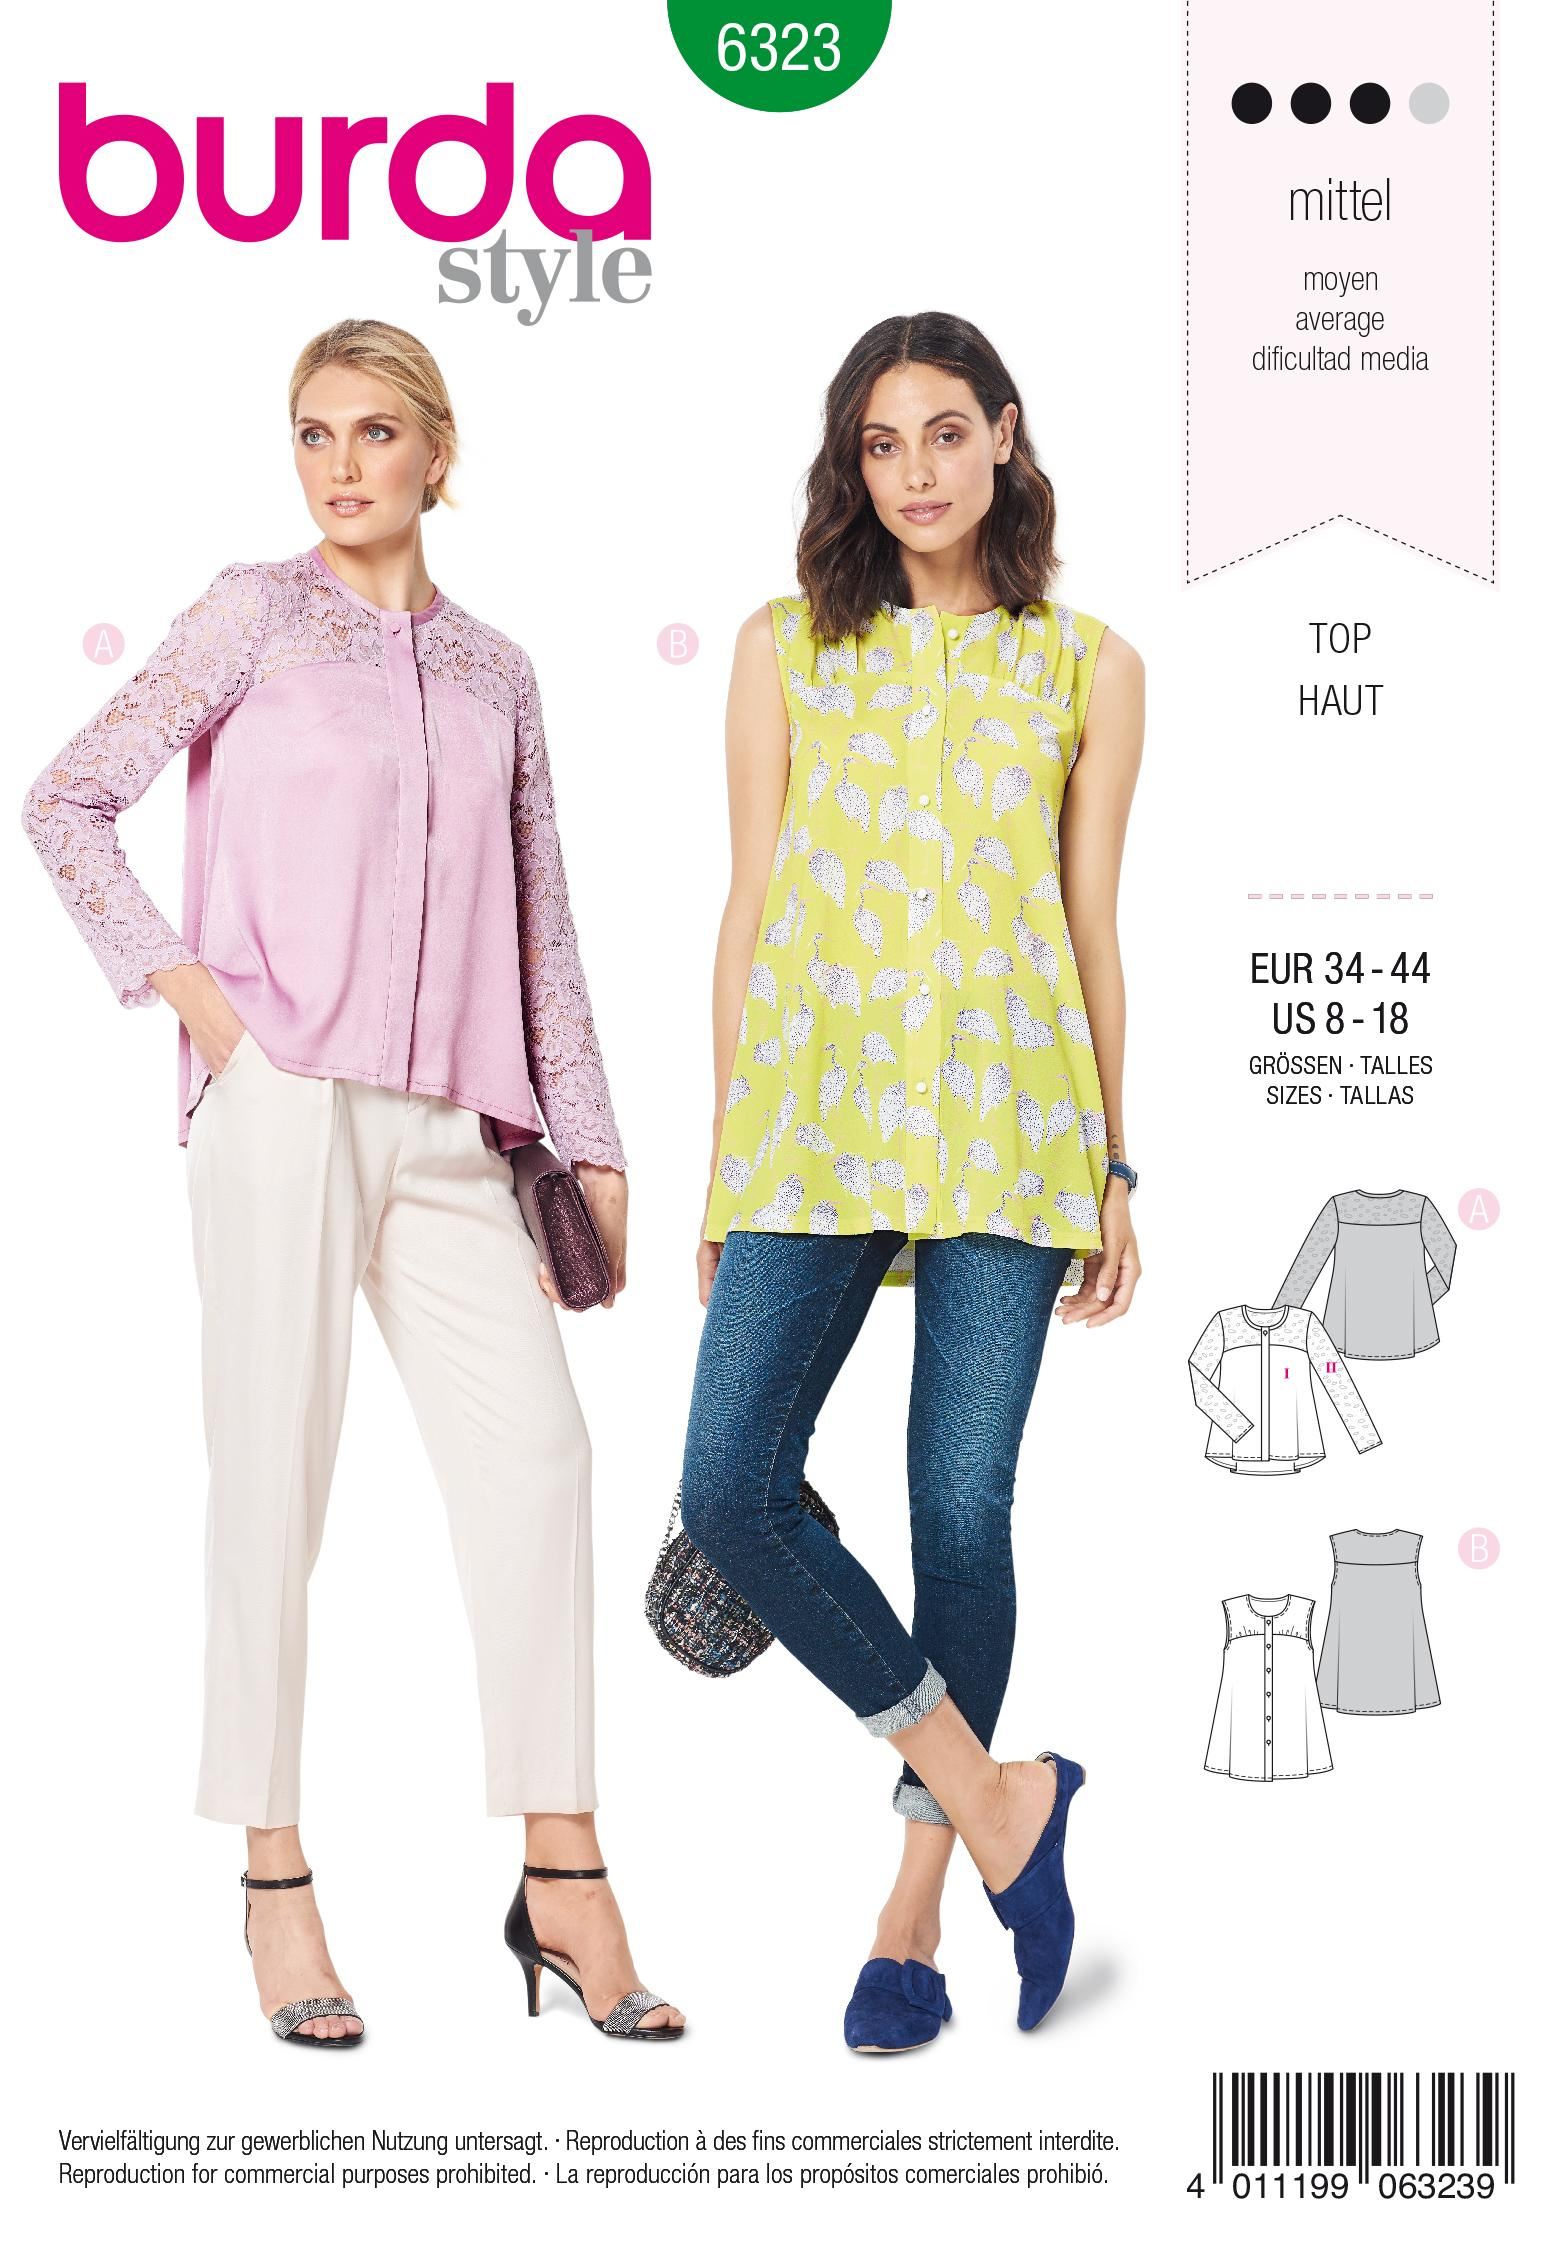 Burda 6323 Misses' blouse with yoke